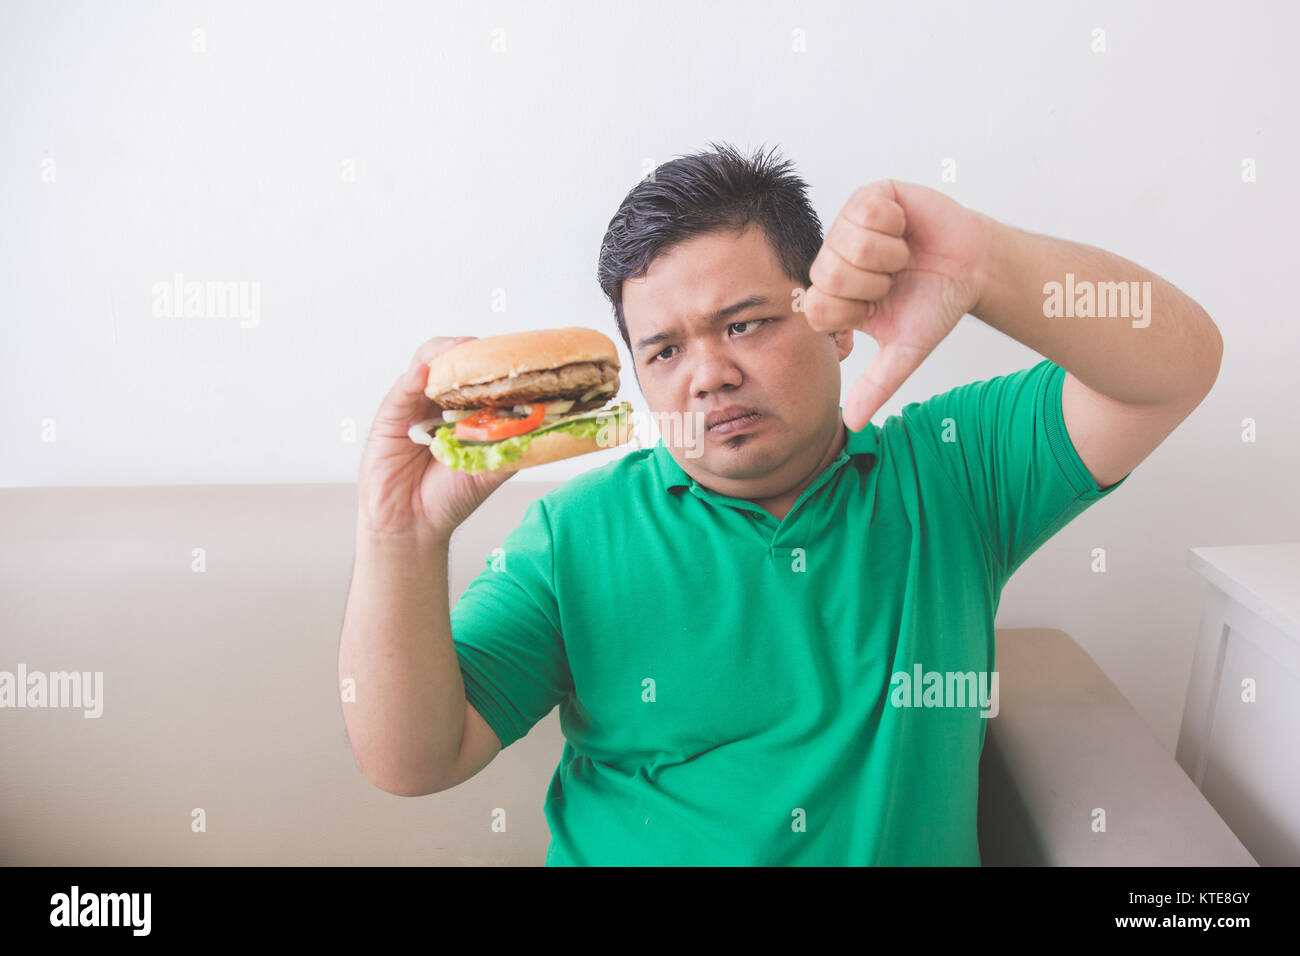 Fette Frau Sessel Overweight Eating Burger Stockfotos And Overweight Eating